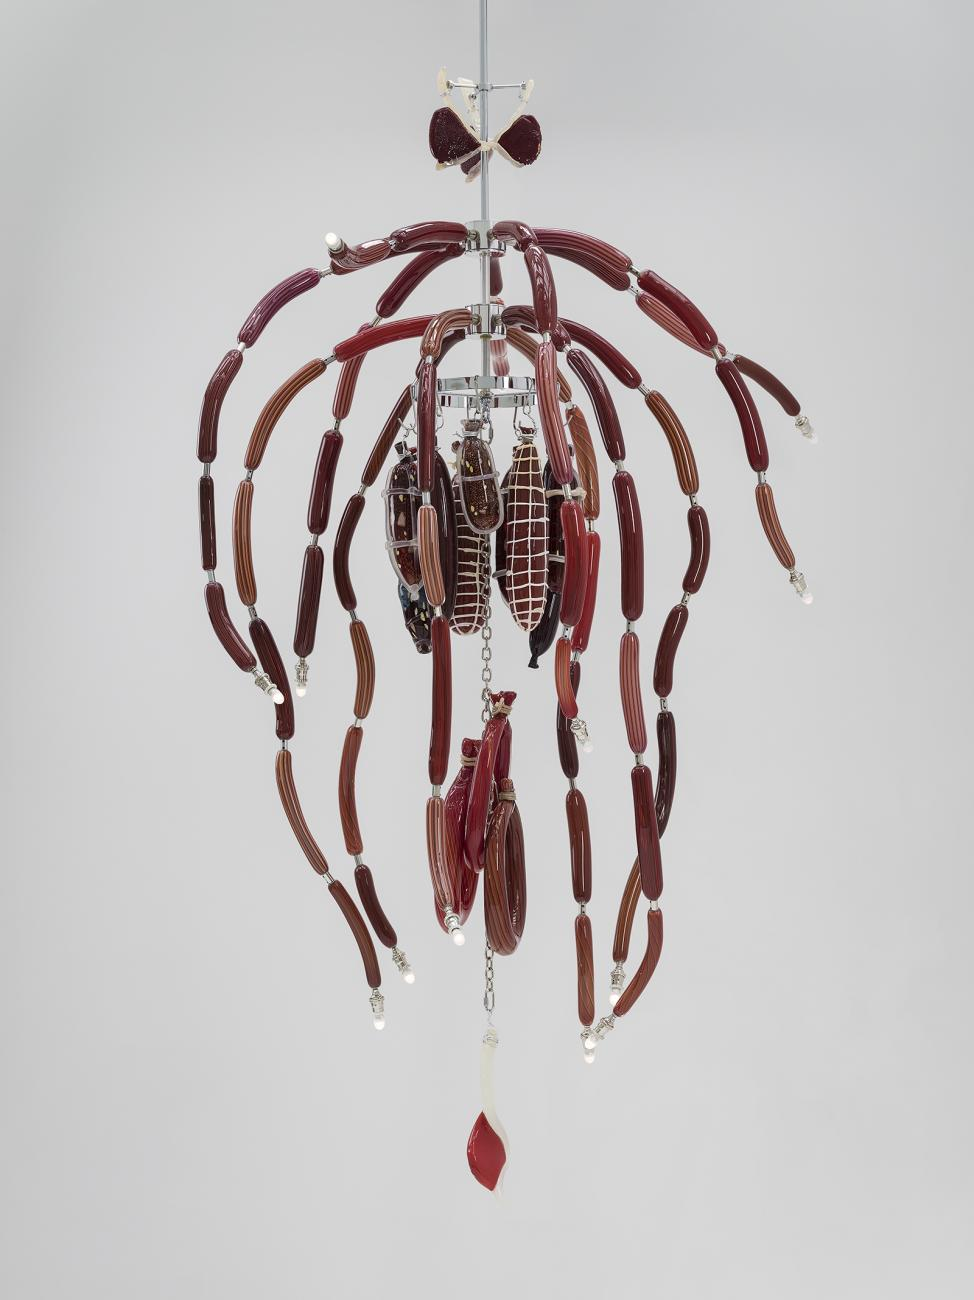 Glass chandelier made to look like hanging meat